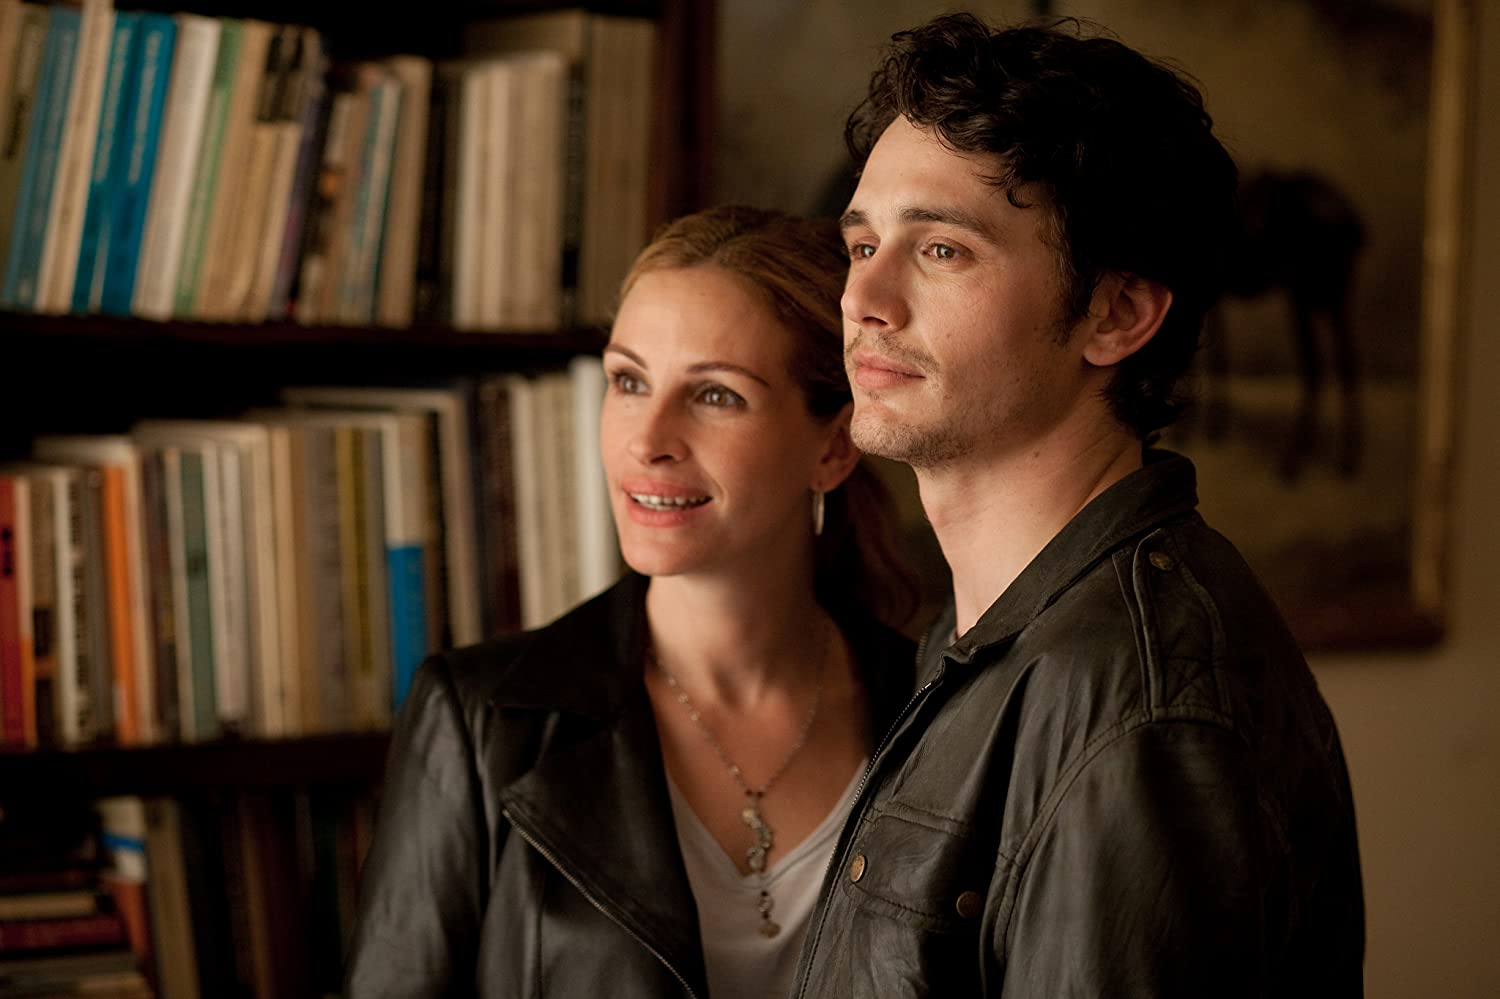 Julia Roberts and James Franco in Eat Pray Love (2010)